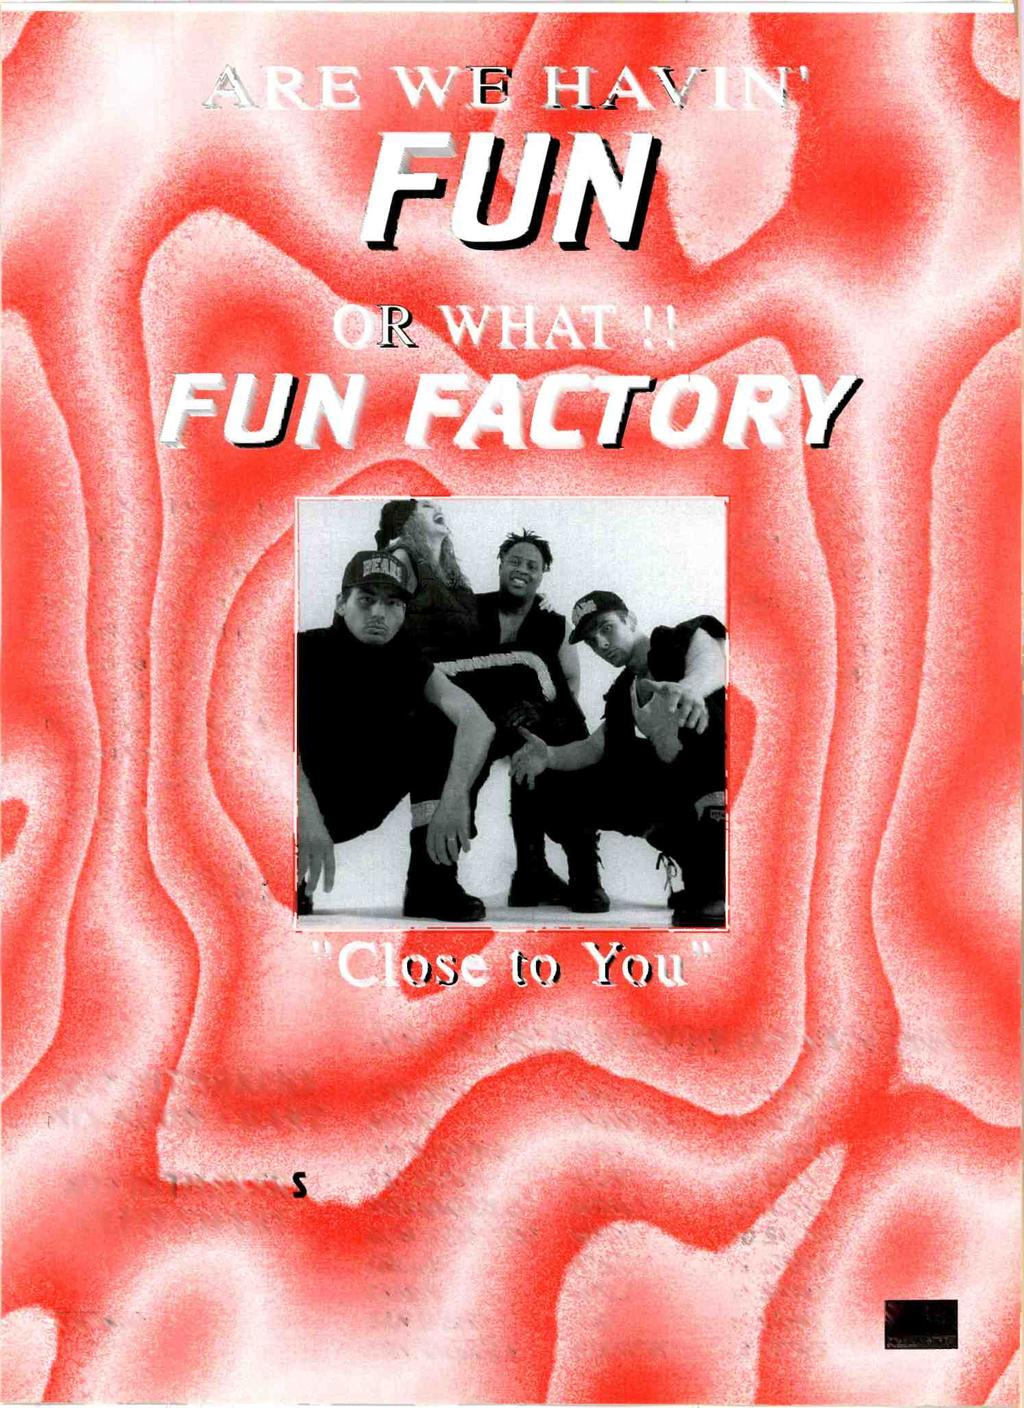 EAT 1 /1,--T/1 /PArti:4)7 FUN FACTORY is completely blown up for us.